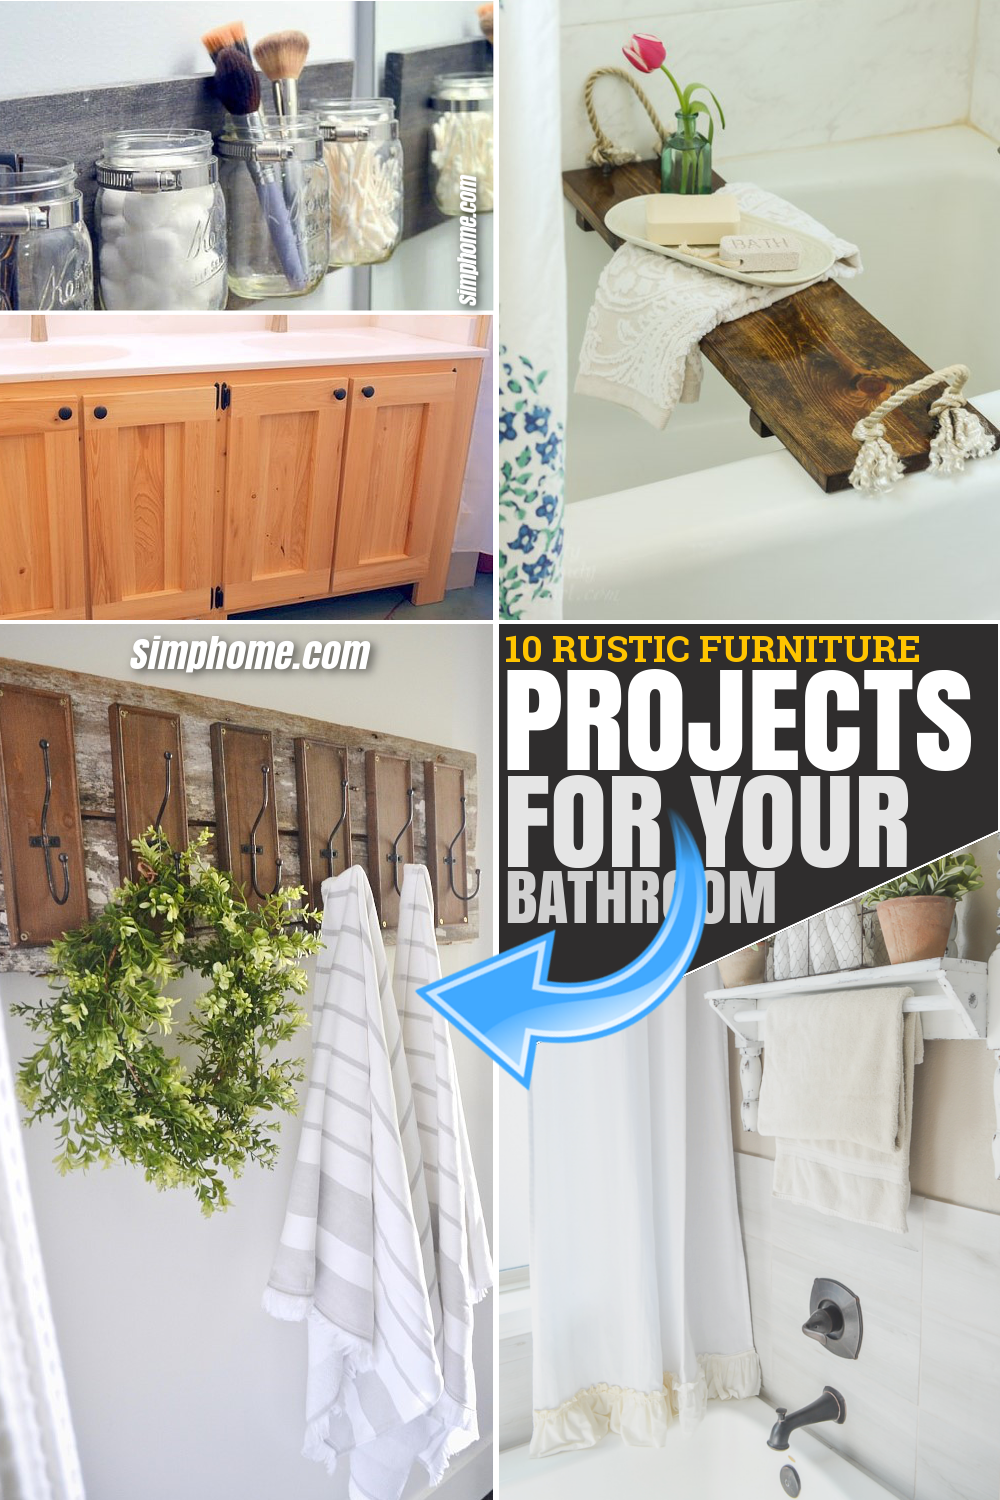 10 DIY Rustic Furniture Projects for Your Bathroom via SIMPHOME.COM Pinterest Featured Image